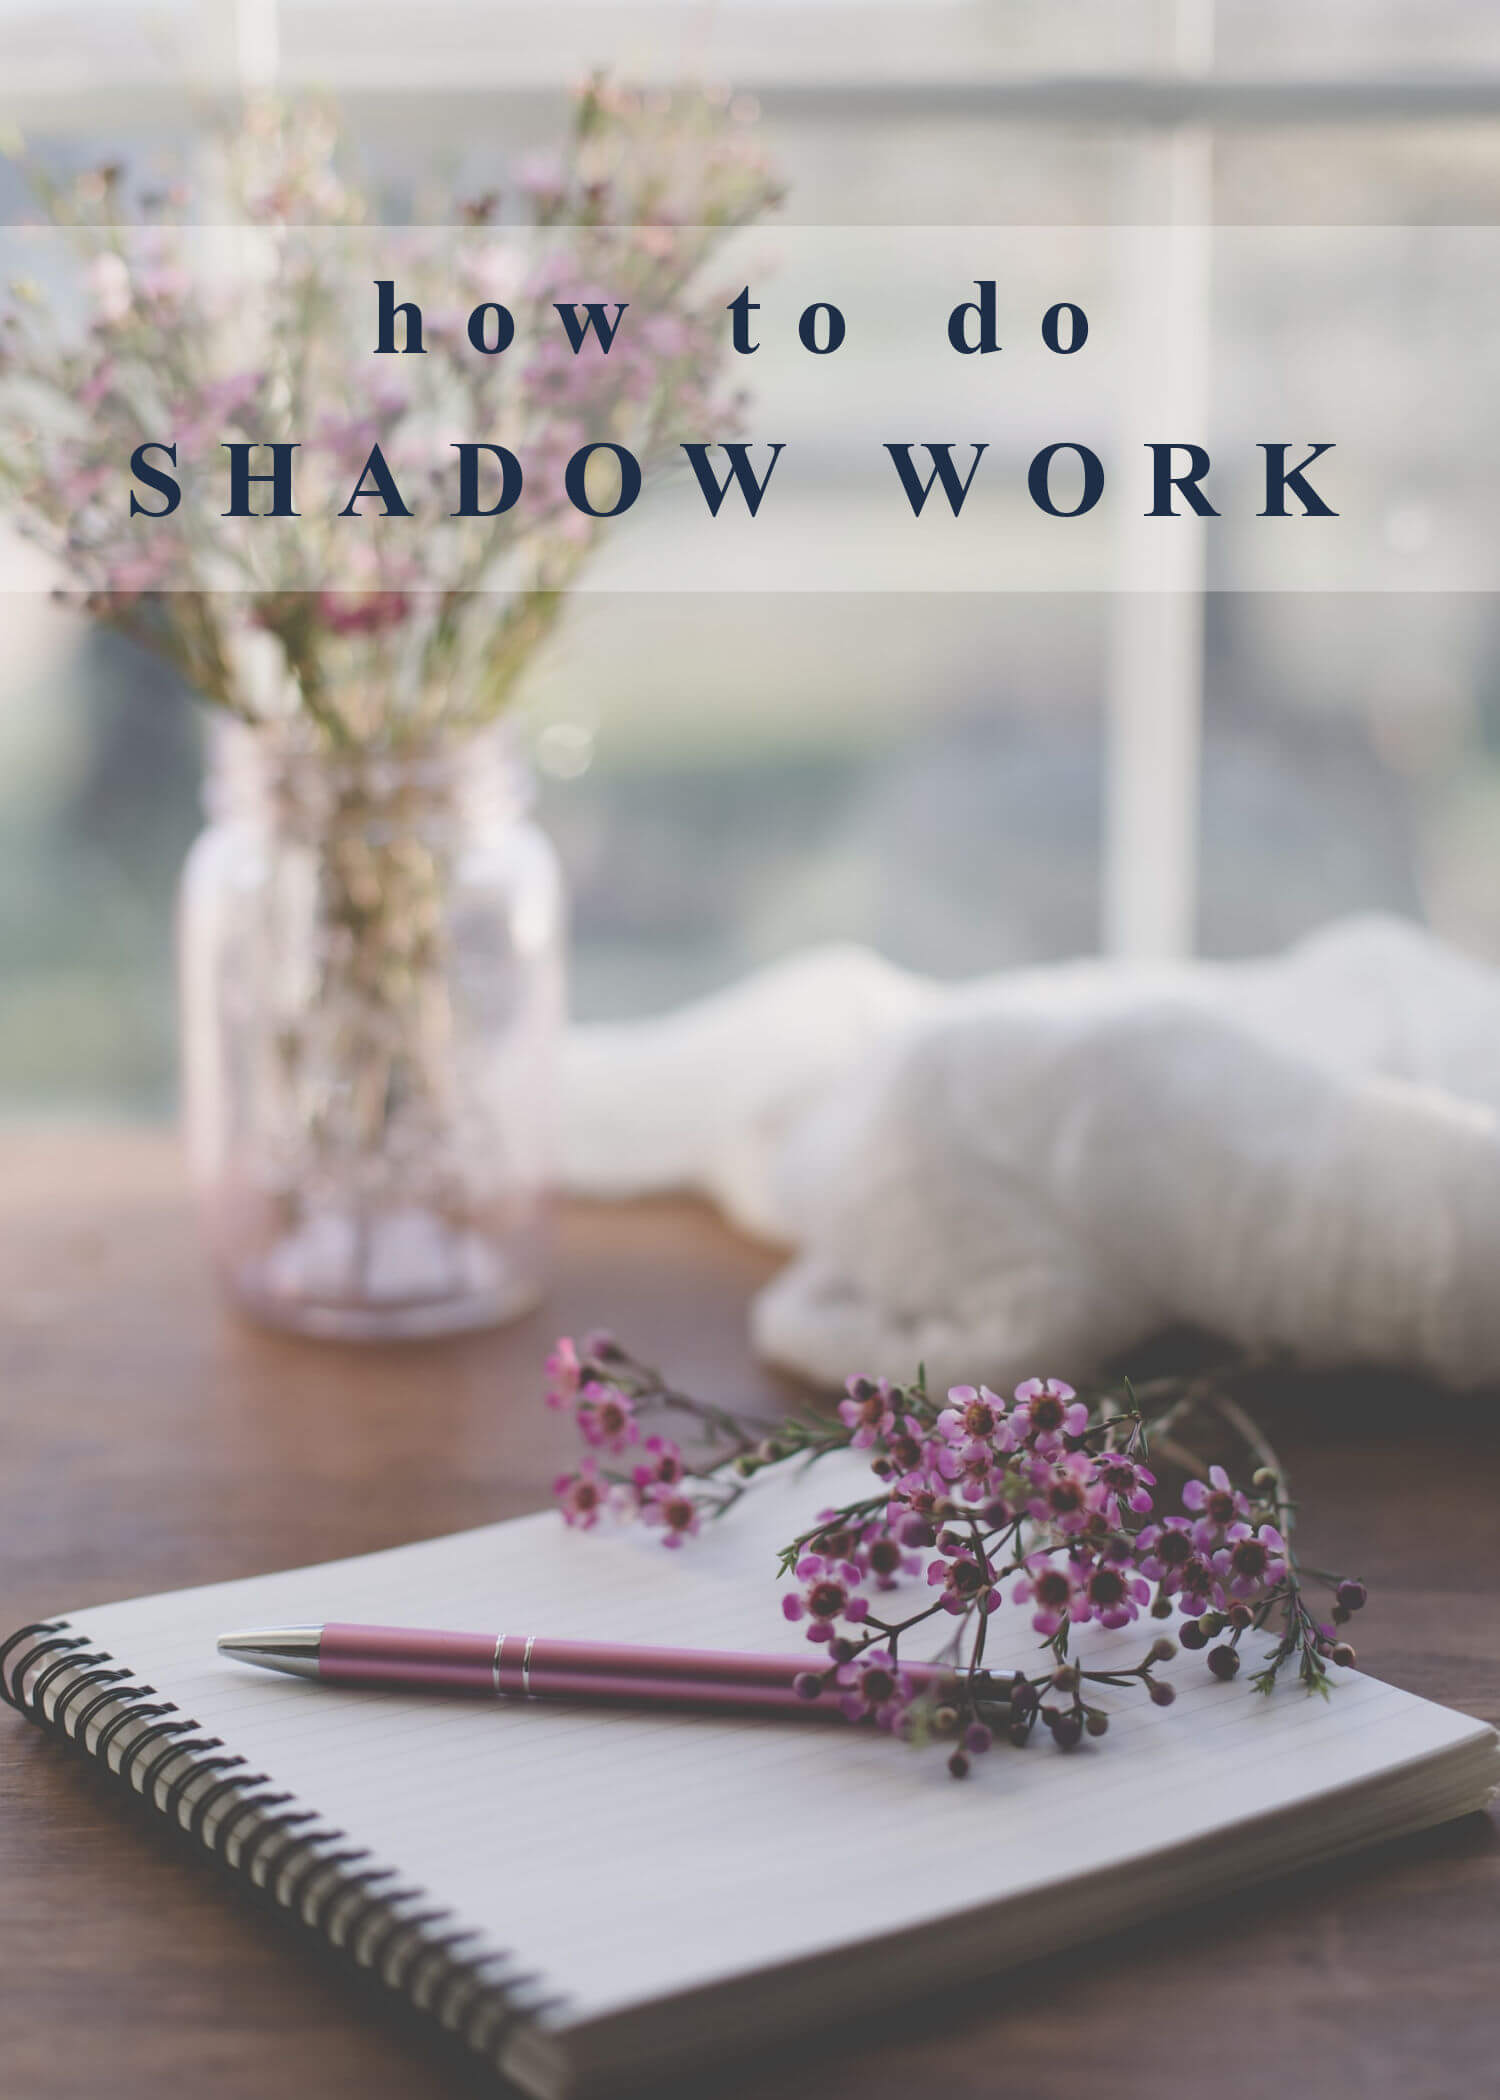 """A beautiful photo of a journal with a pen on a wooden desk with a jar of purple flowers in the background. Text overlay reads, """"how to do shadow work."""""""